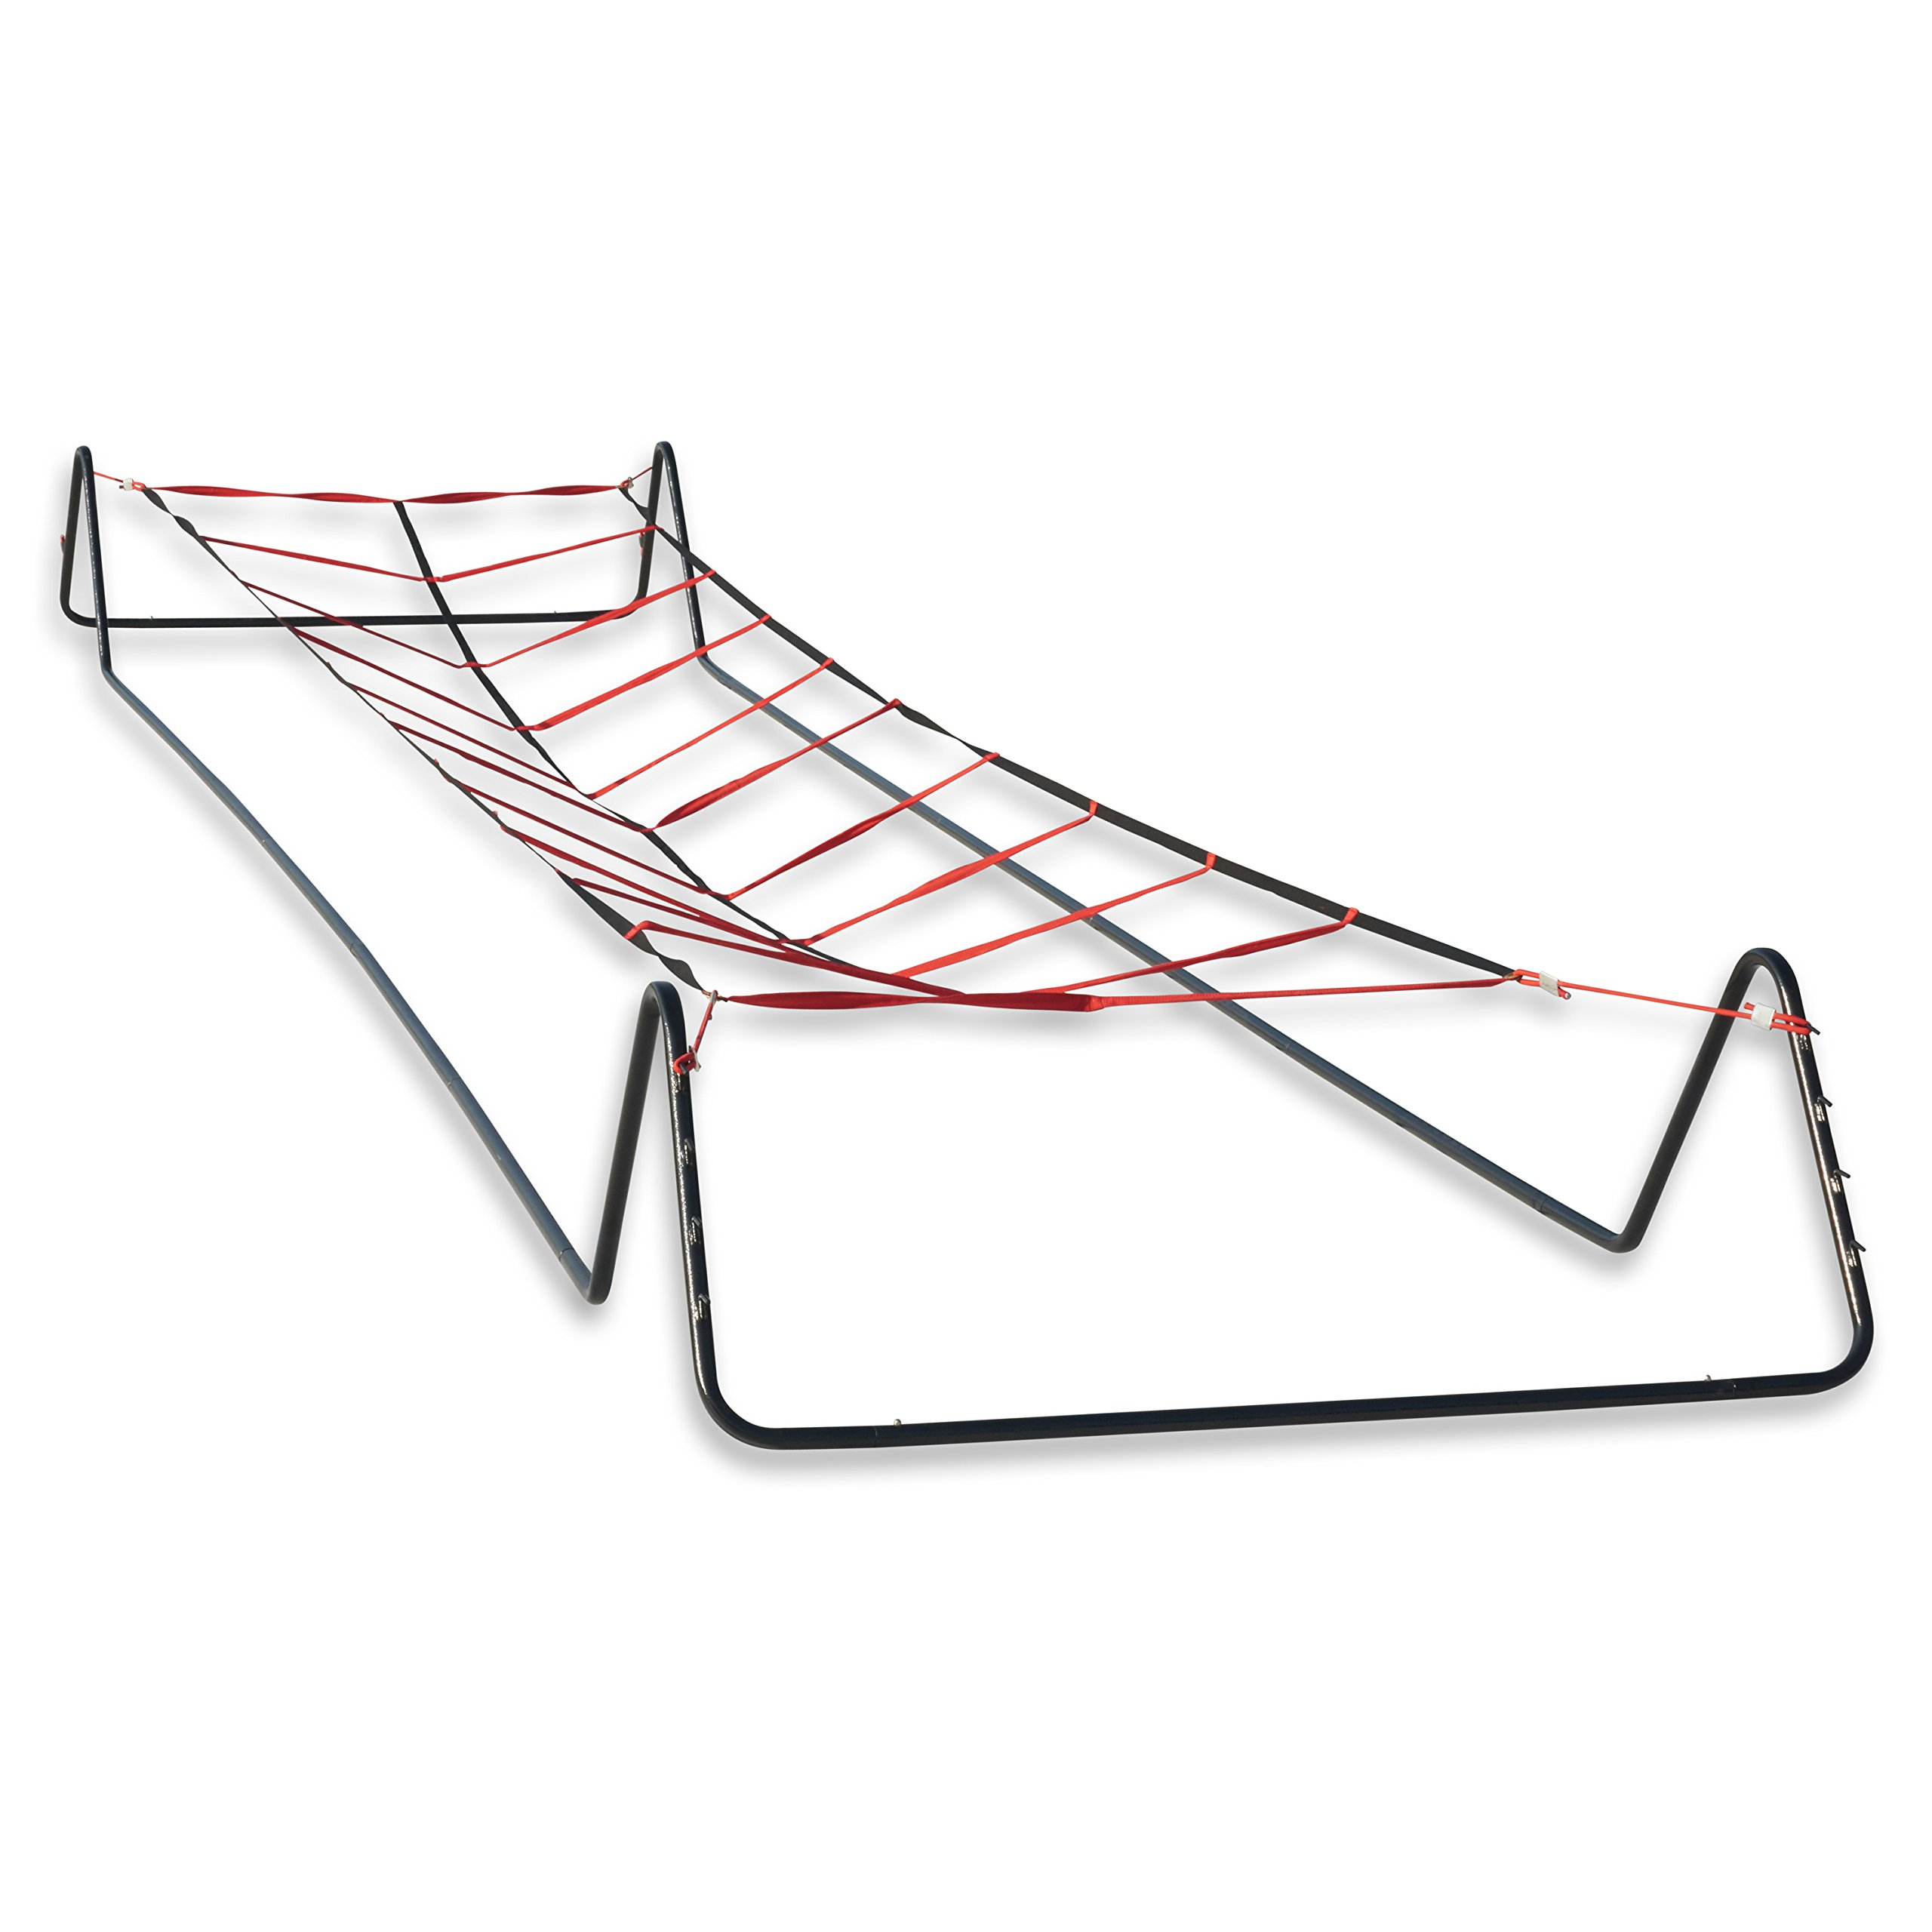 Unlimited Potential Metal High Jumping Ladder Fully Collapsible Agility Training by Unlimited Potential